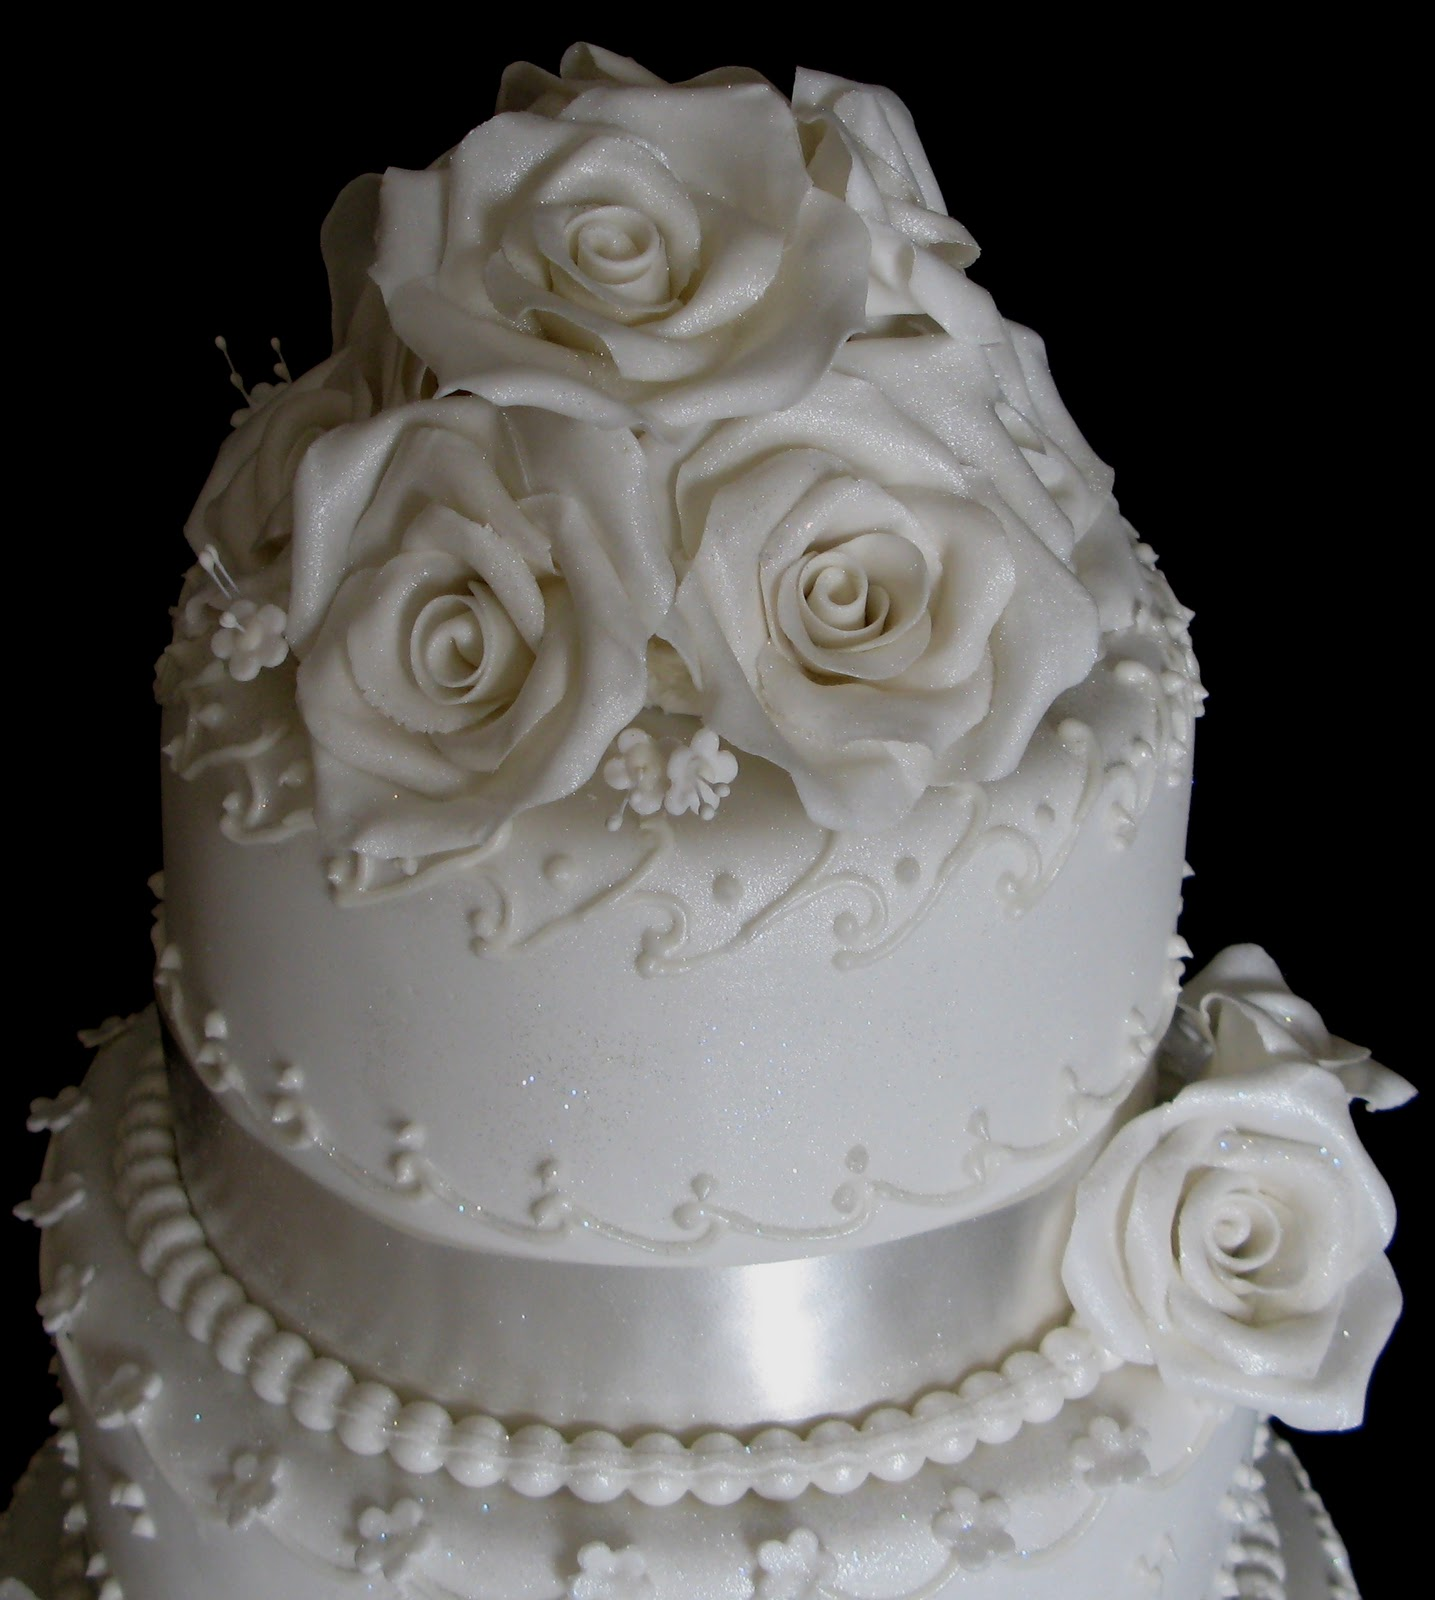 Sugarcraft by Soni: Three Layer Wedding Cake - White Roses